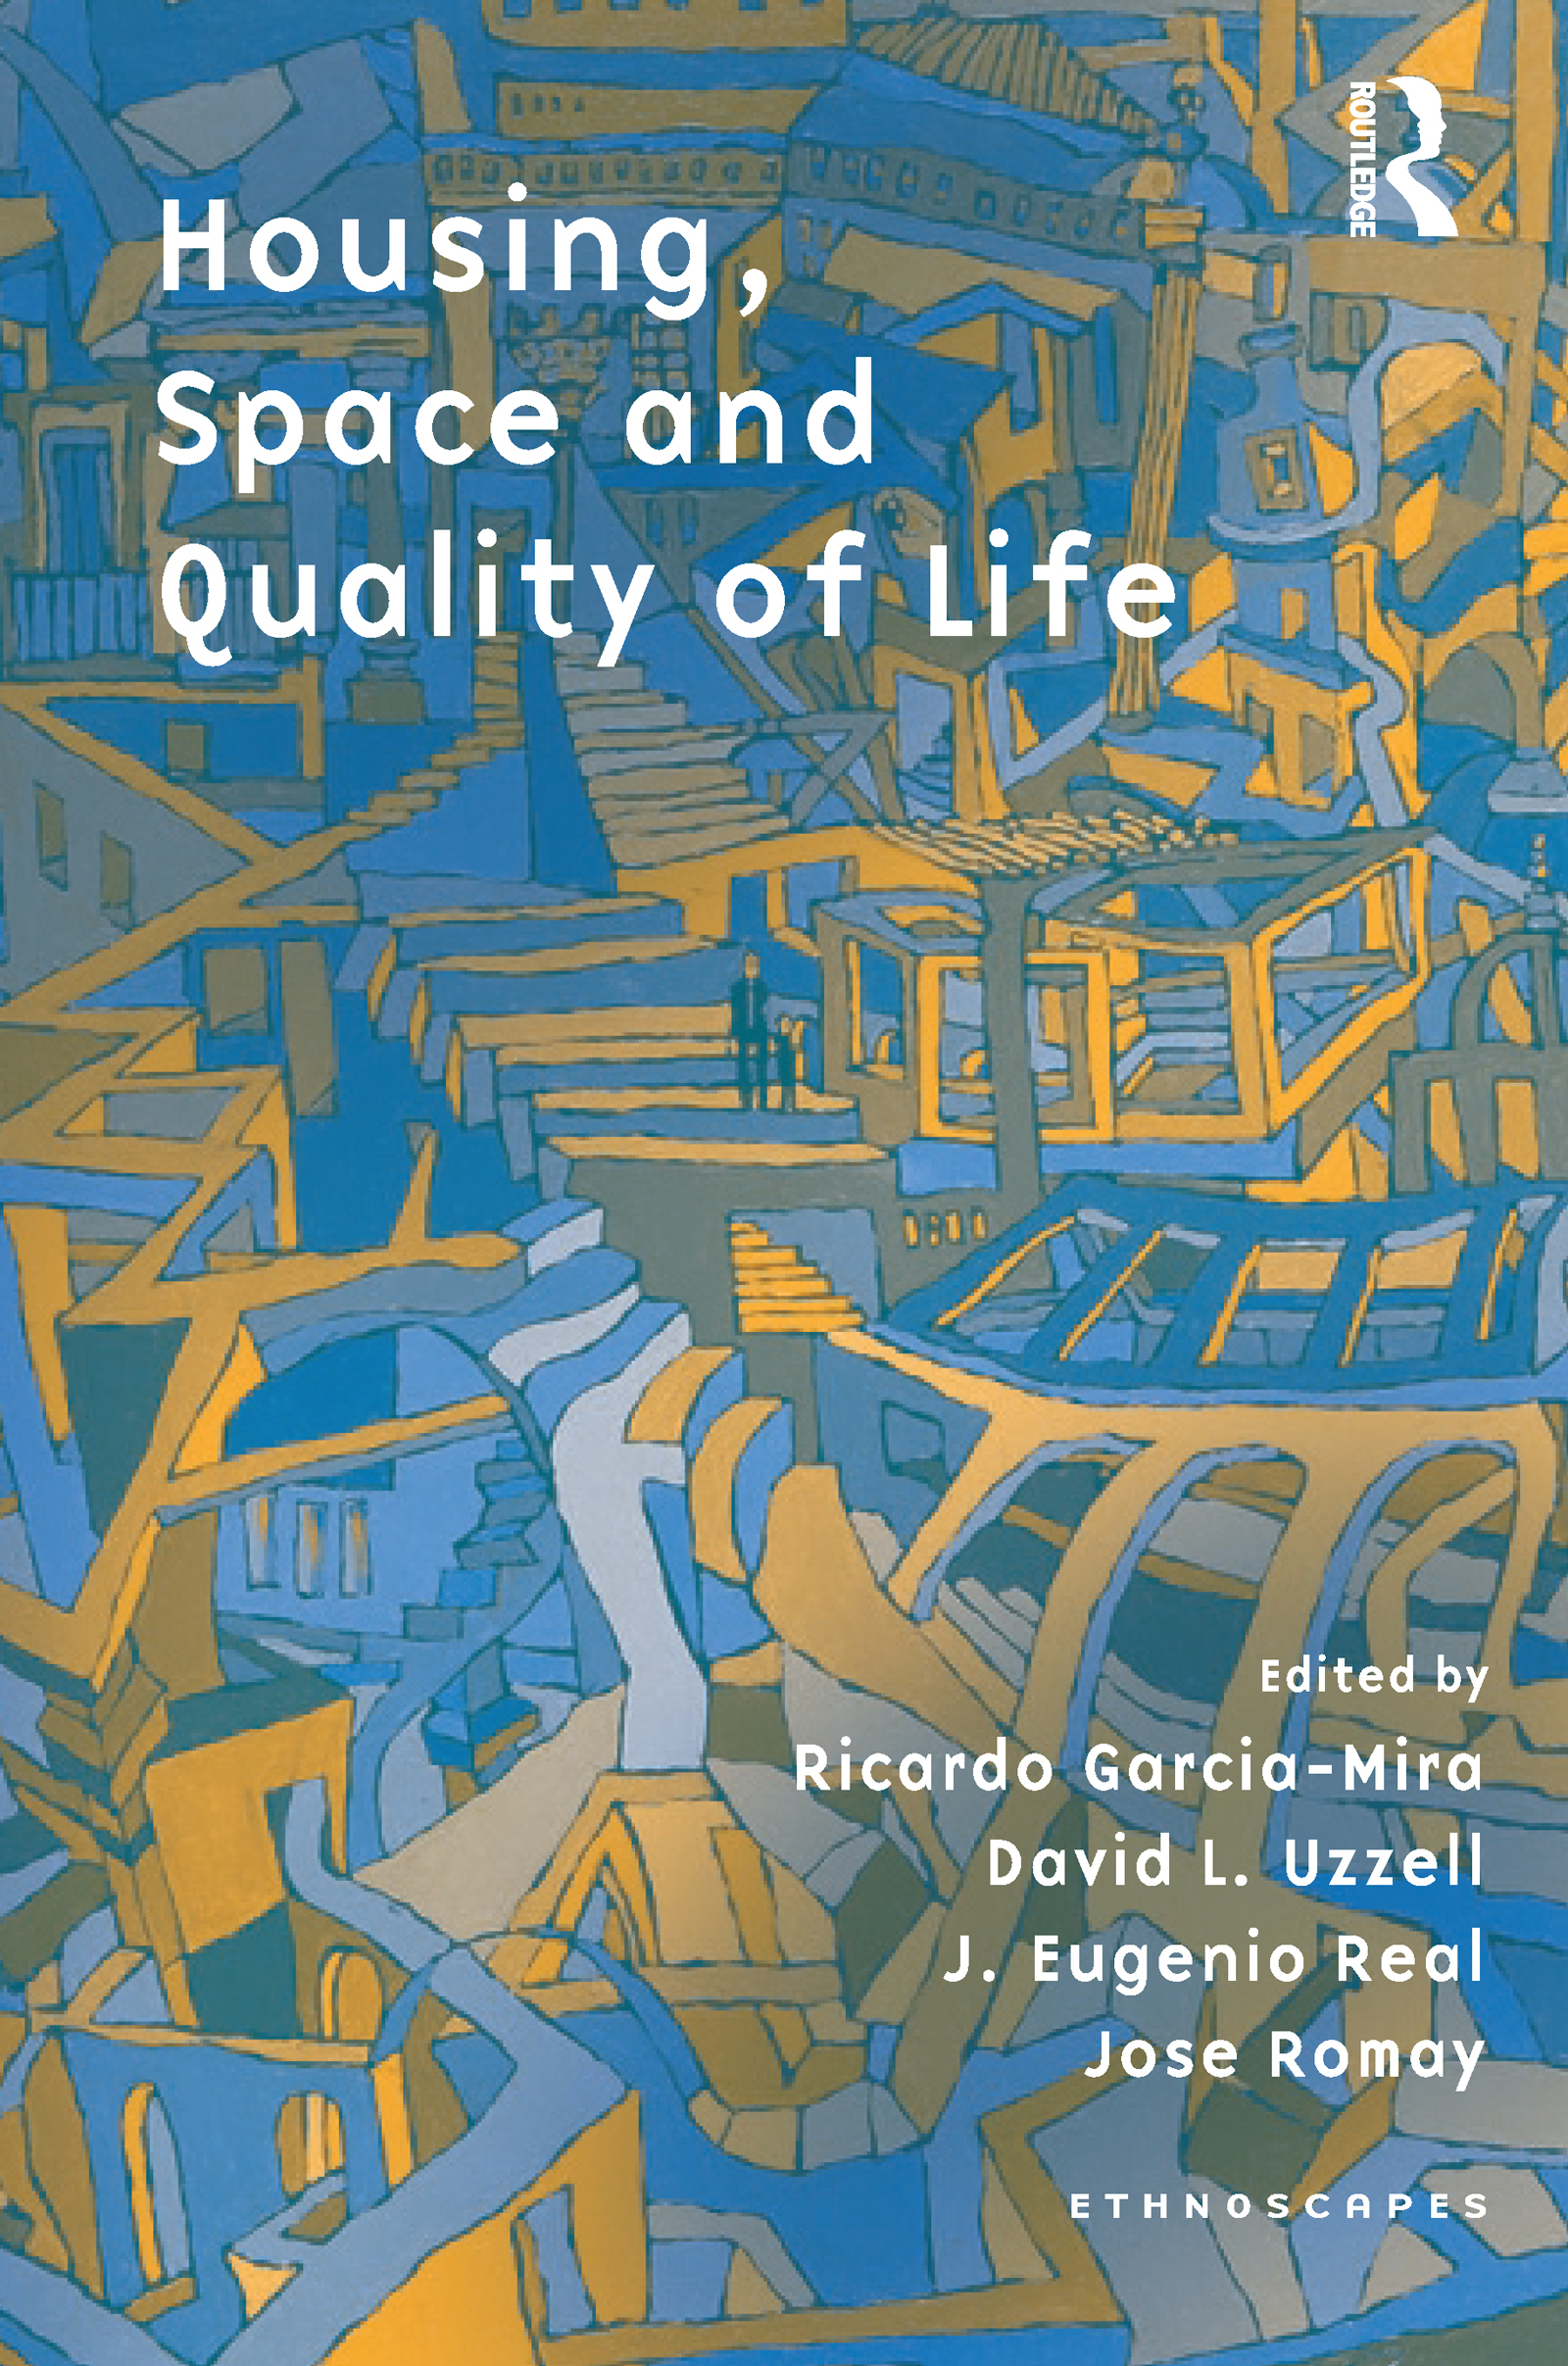 Housing, Space and Quality of Life